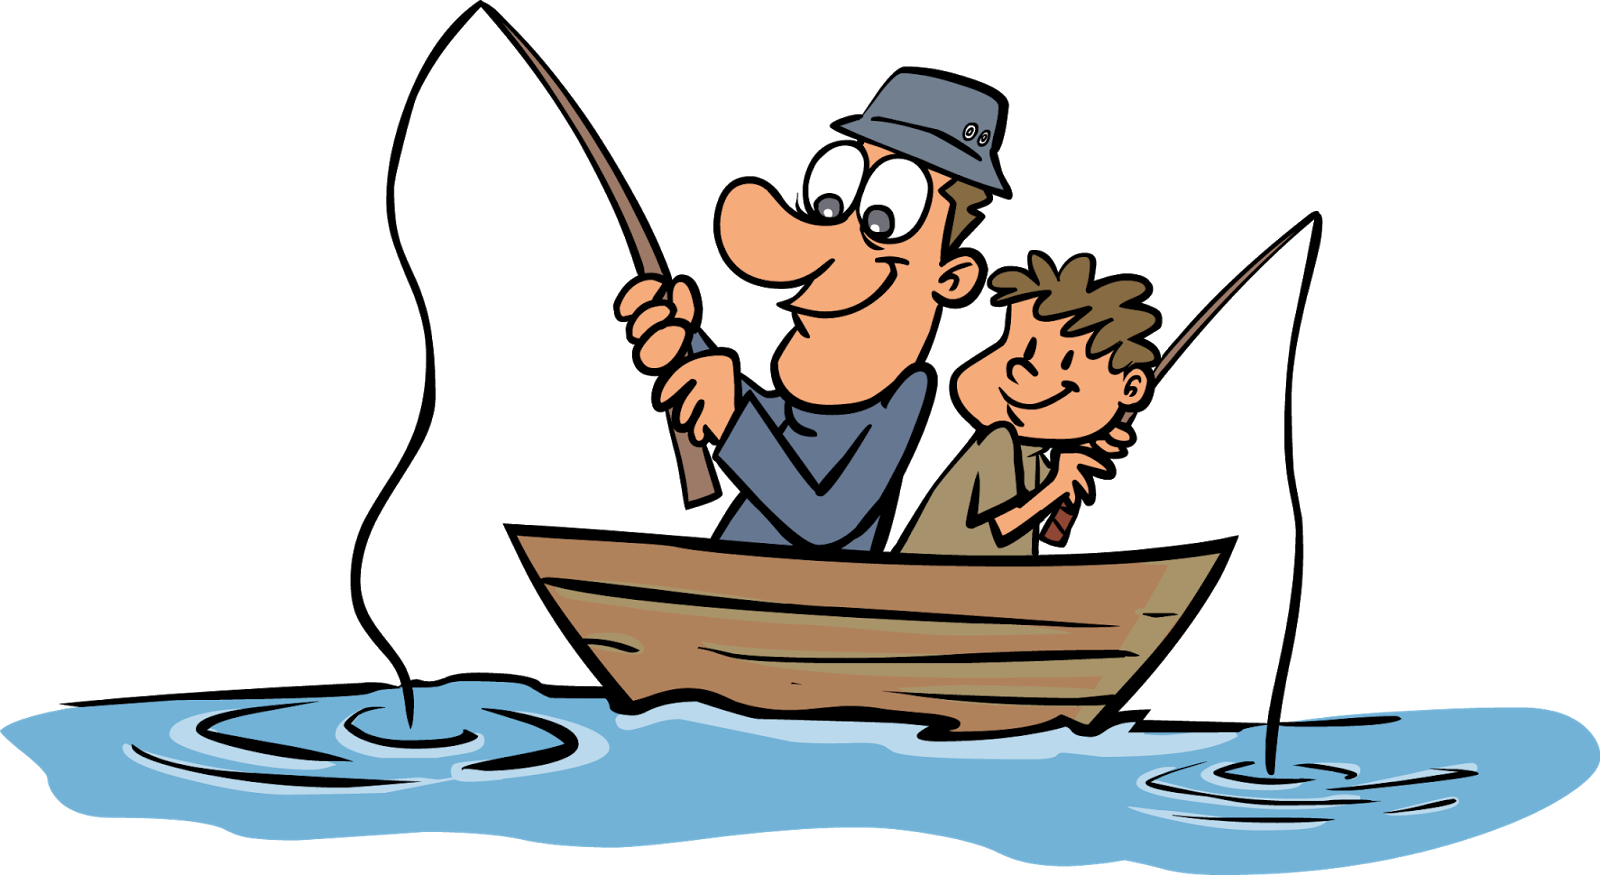 Dorchester times free fishing. Phone clipart family